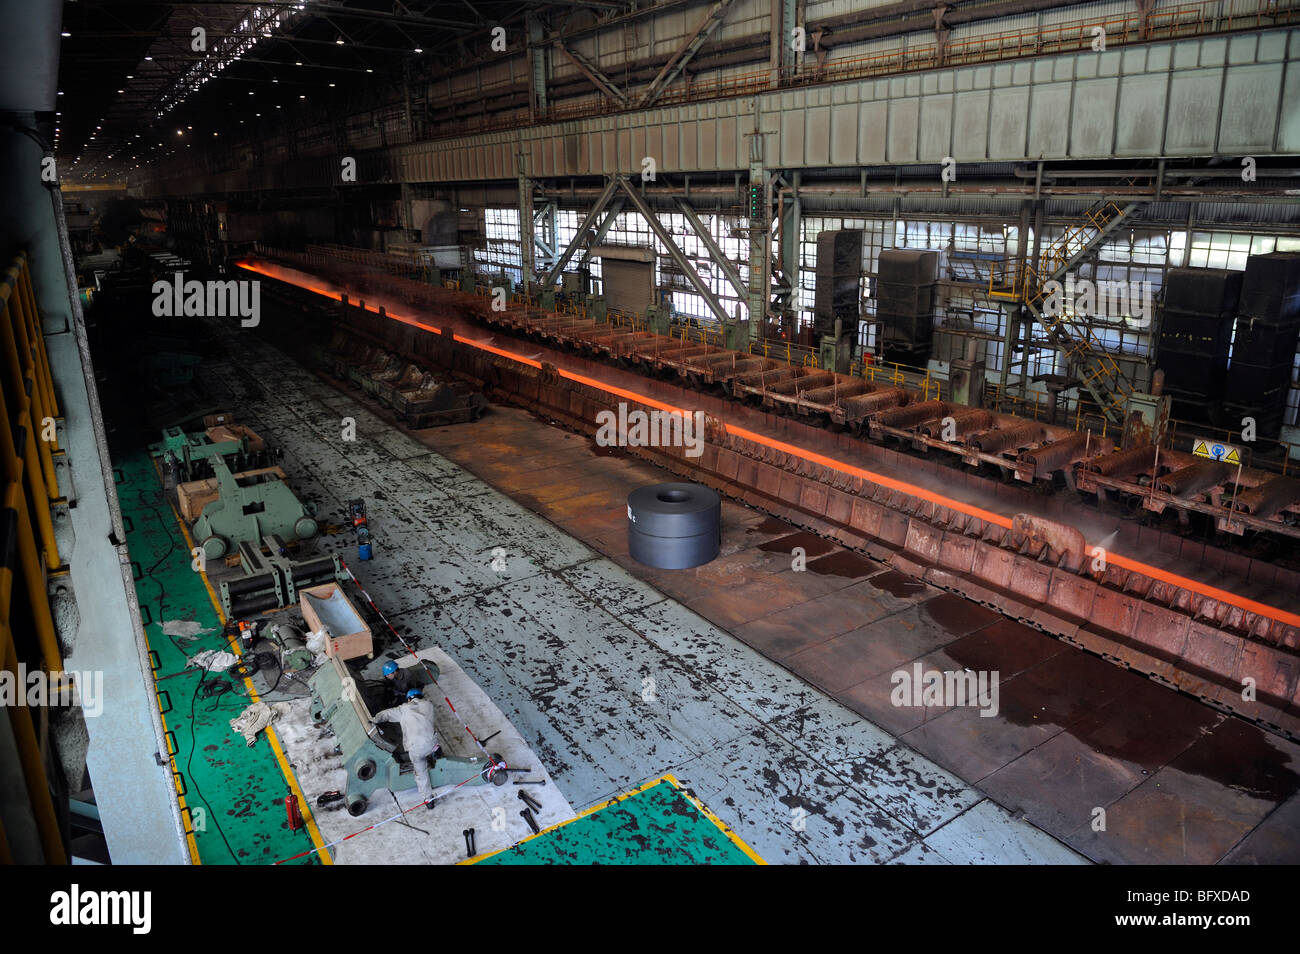 Molten hot plate steel being rolled at Shanghai Baosteel factory. 20-Oct-2009 - Stock Image